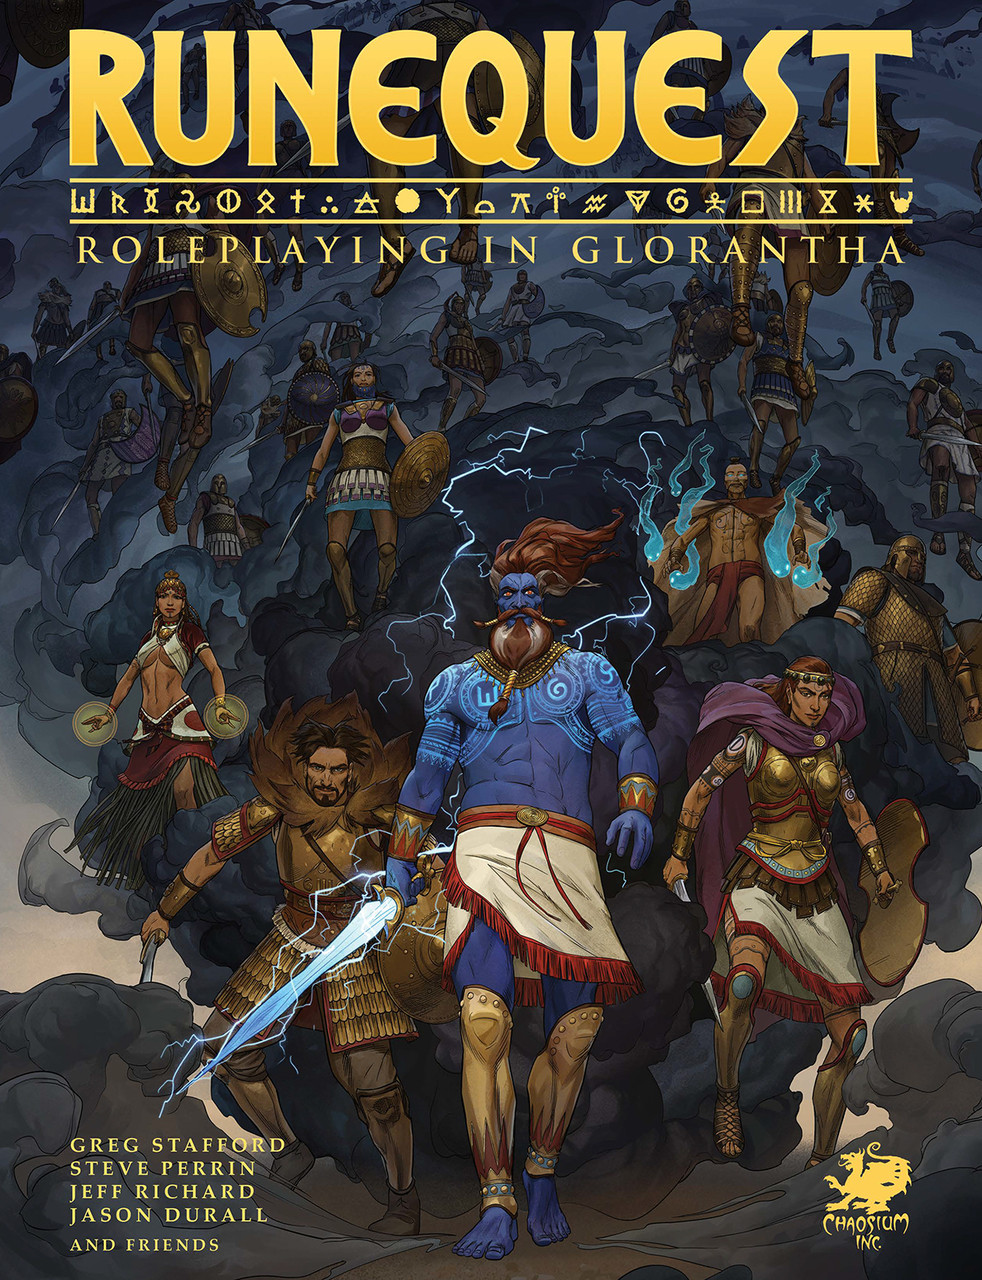 kép:https://cdn10.bigcommerce.com/s-9zhx02uo/products/2014/images/2609/CHA4028_-_RuneQuest_-_Roleplaying_in_Glorantha_-_Front_Cover__15166.1536487991.1280.1280.jpg